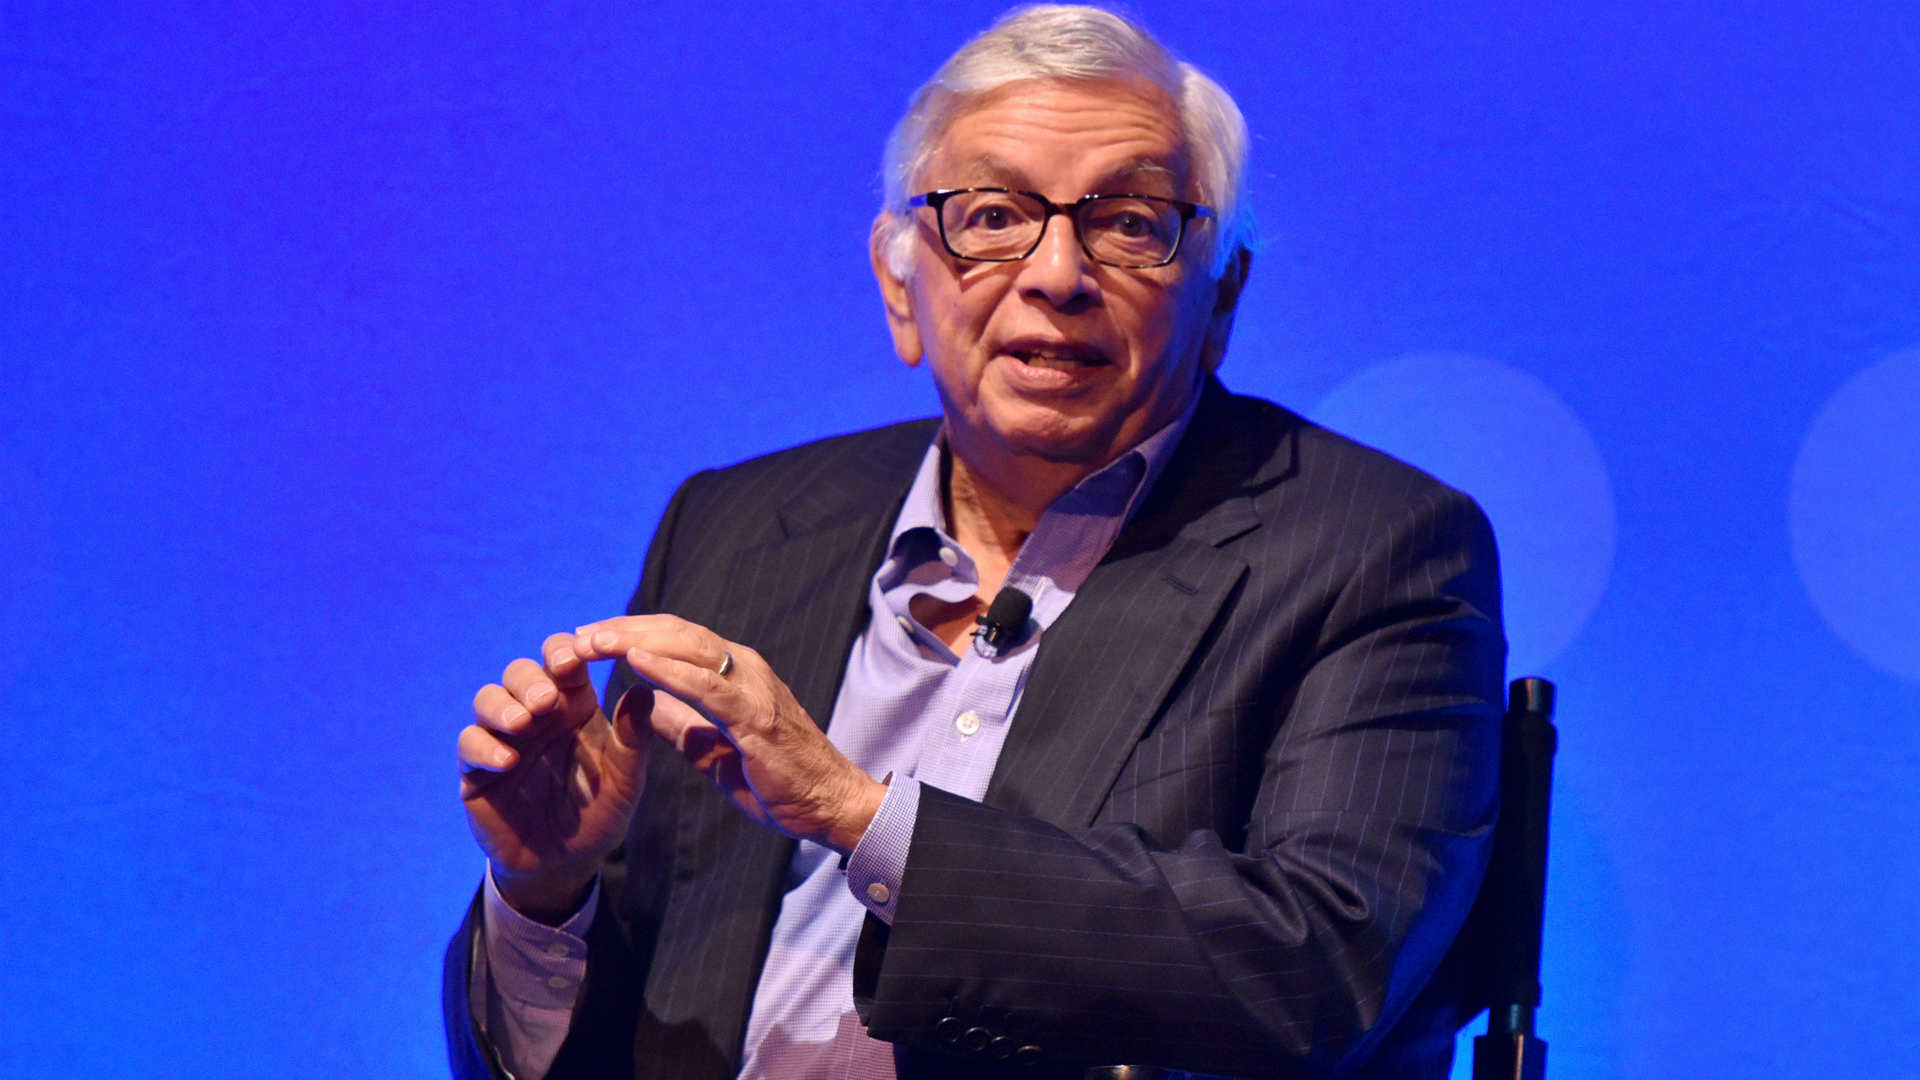 David Stern Says Medical Marijuana Should Be Allowed in the National Basketball Association